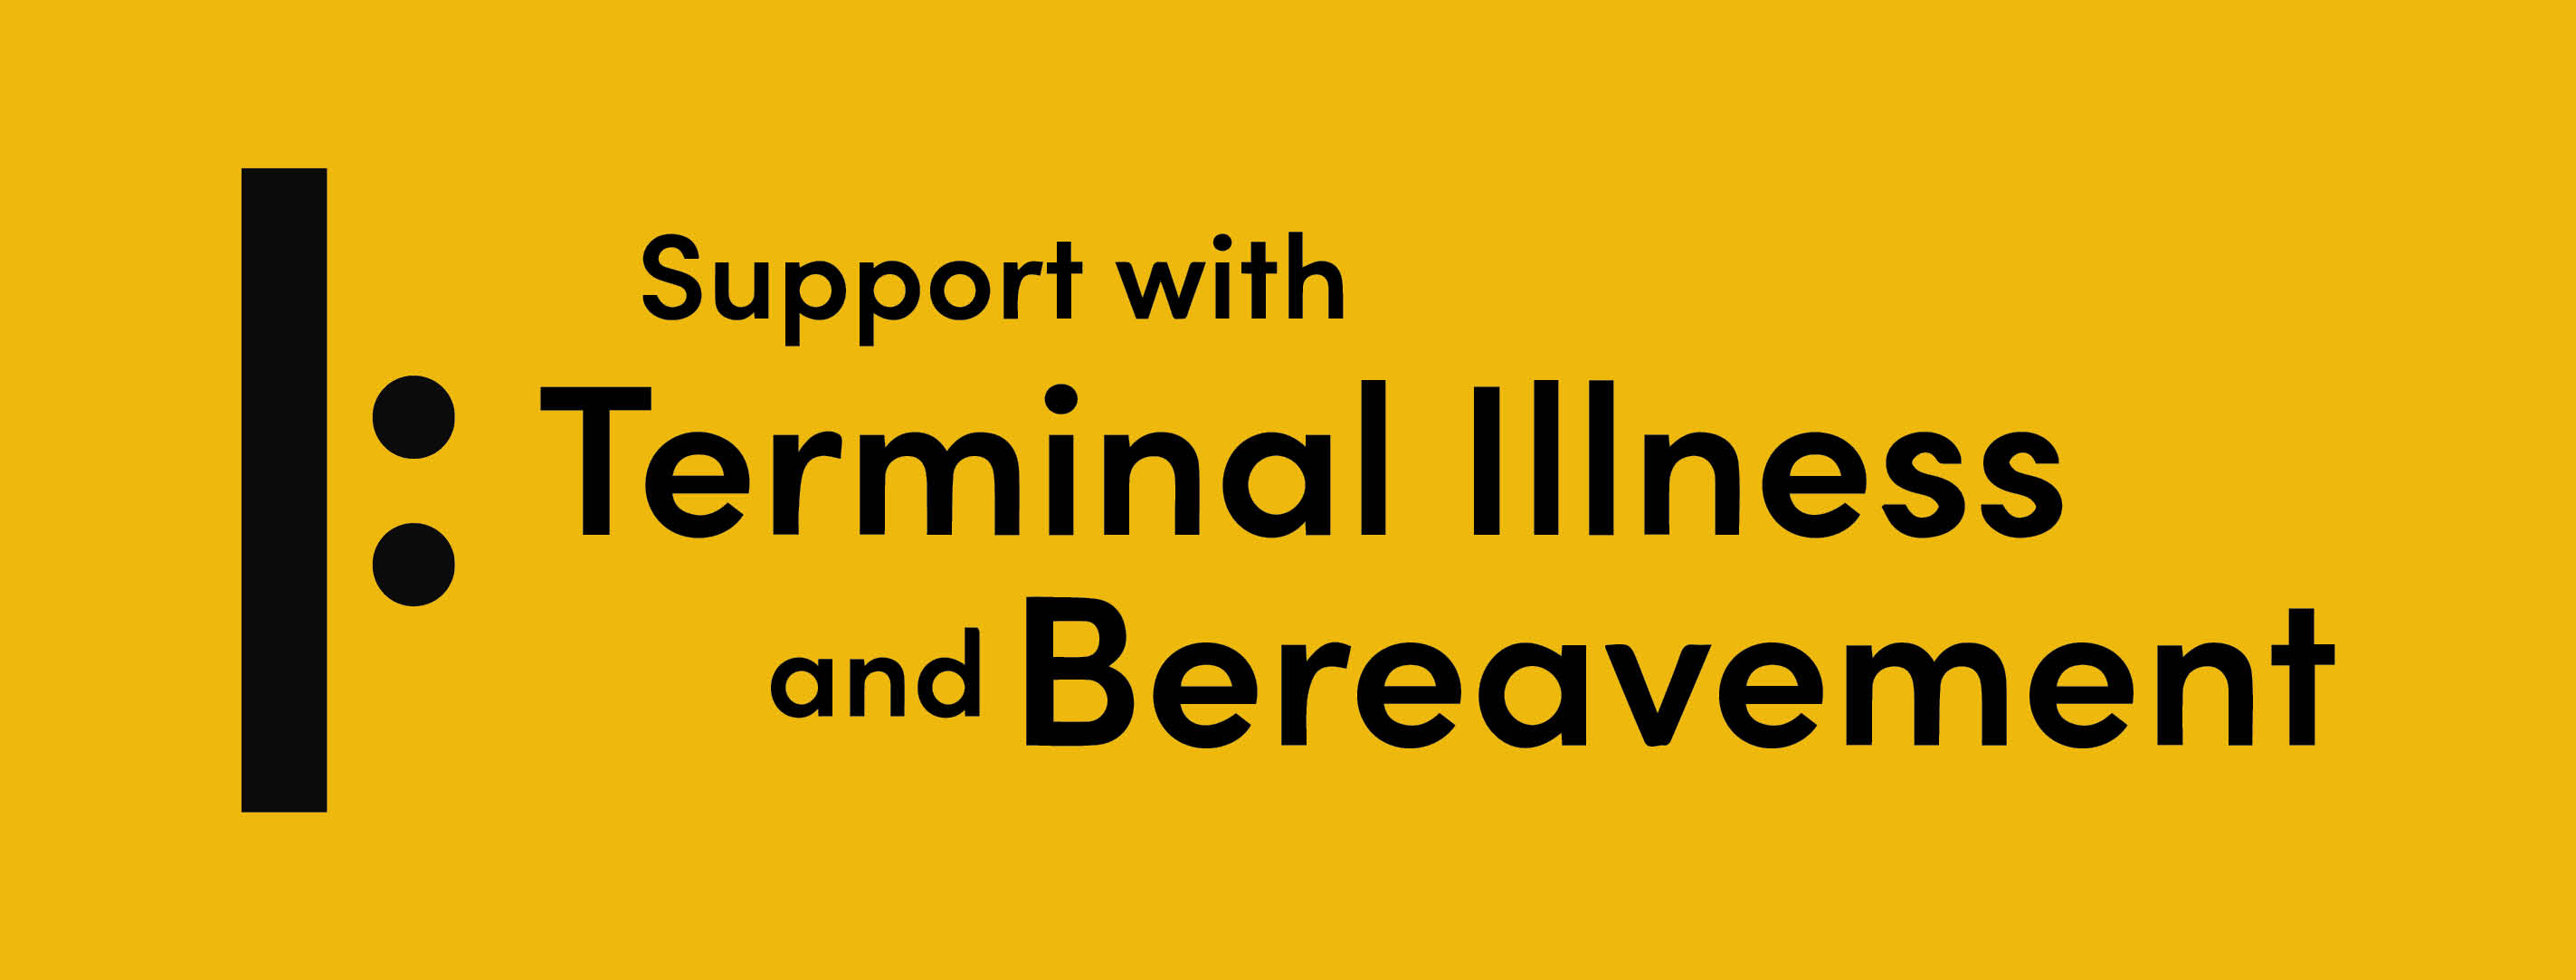 Health & Welfare - Support with Terminal Illness & Bereavement